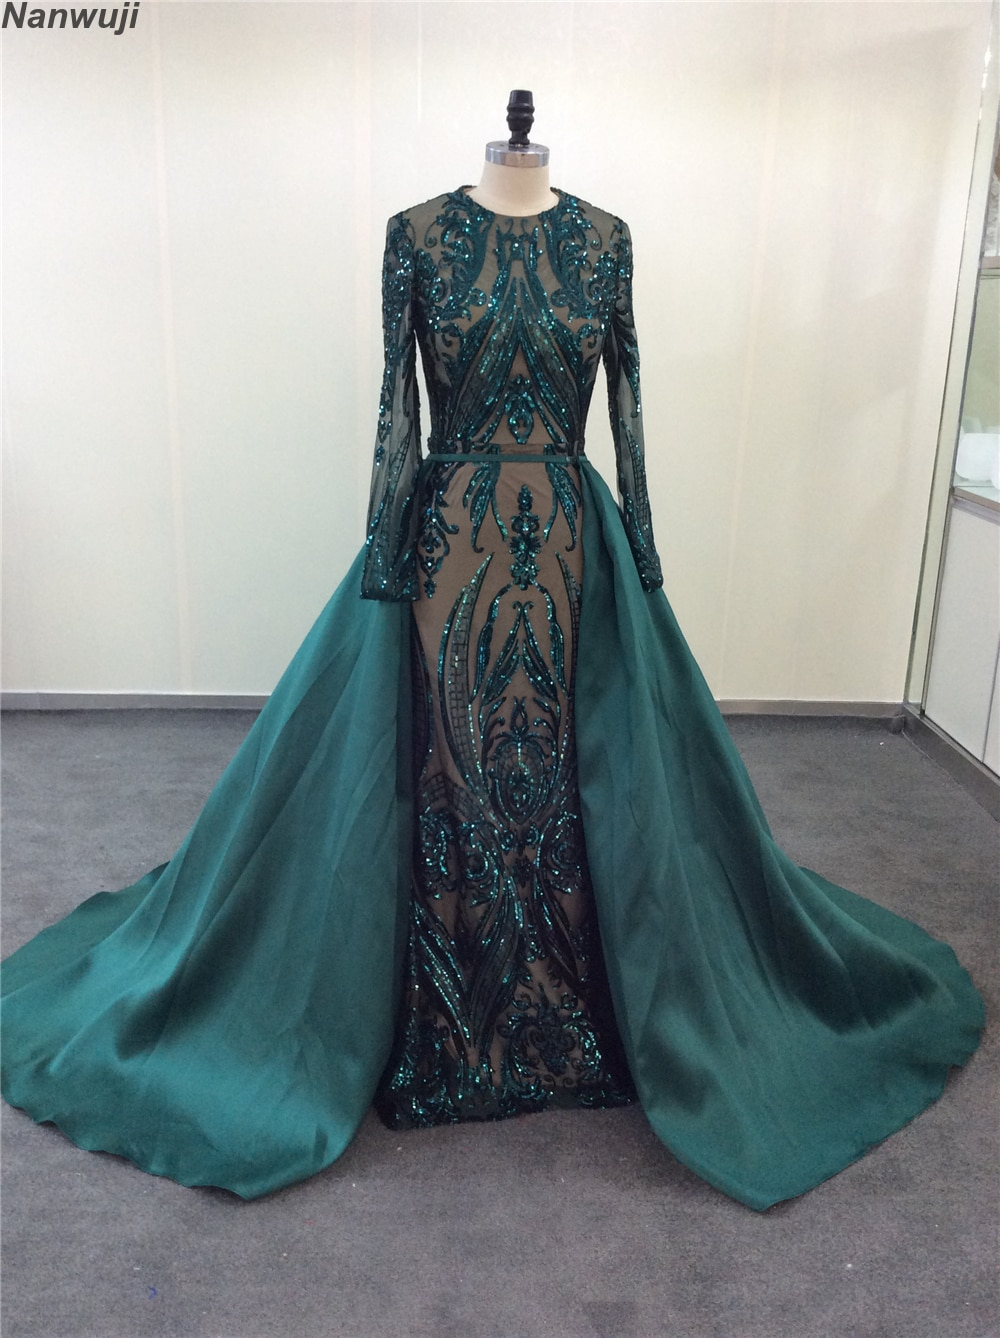 Robe De Soiree Longue 2019 Detachable Train  Skirt green Evening Dresses Long sleeves Sequin Applique Arabic Evening Gown